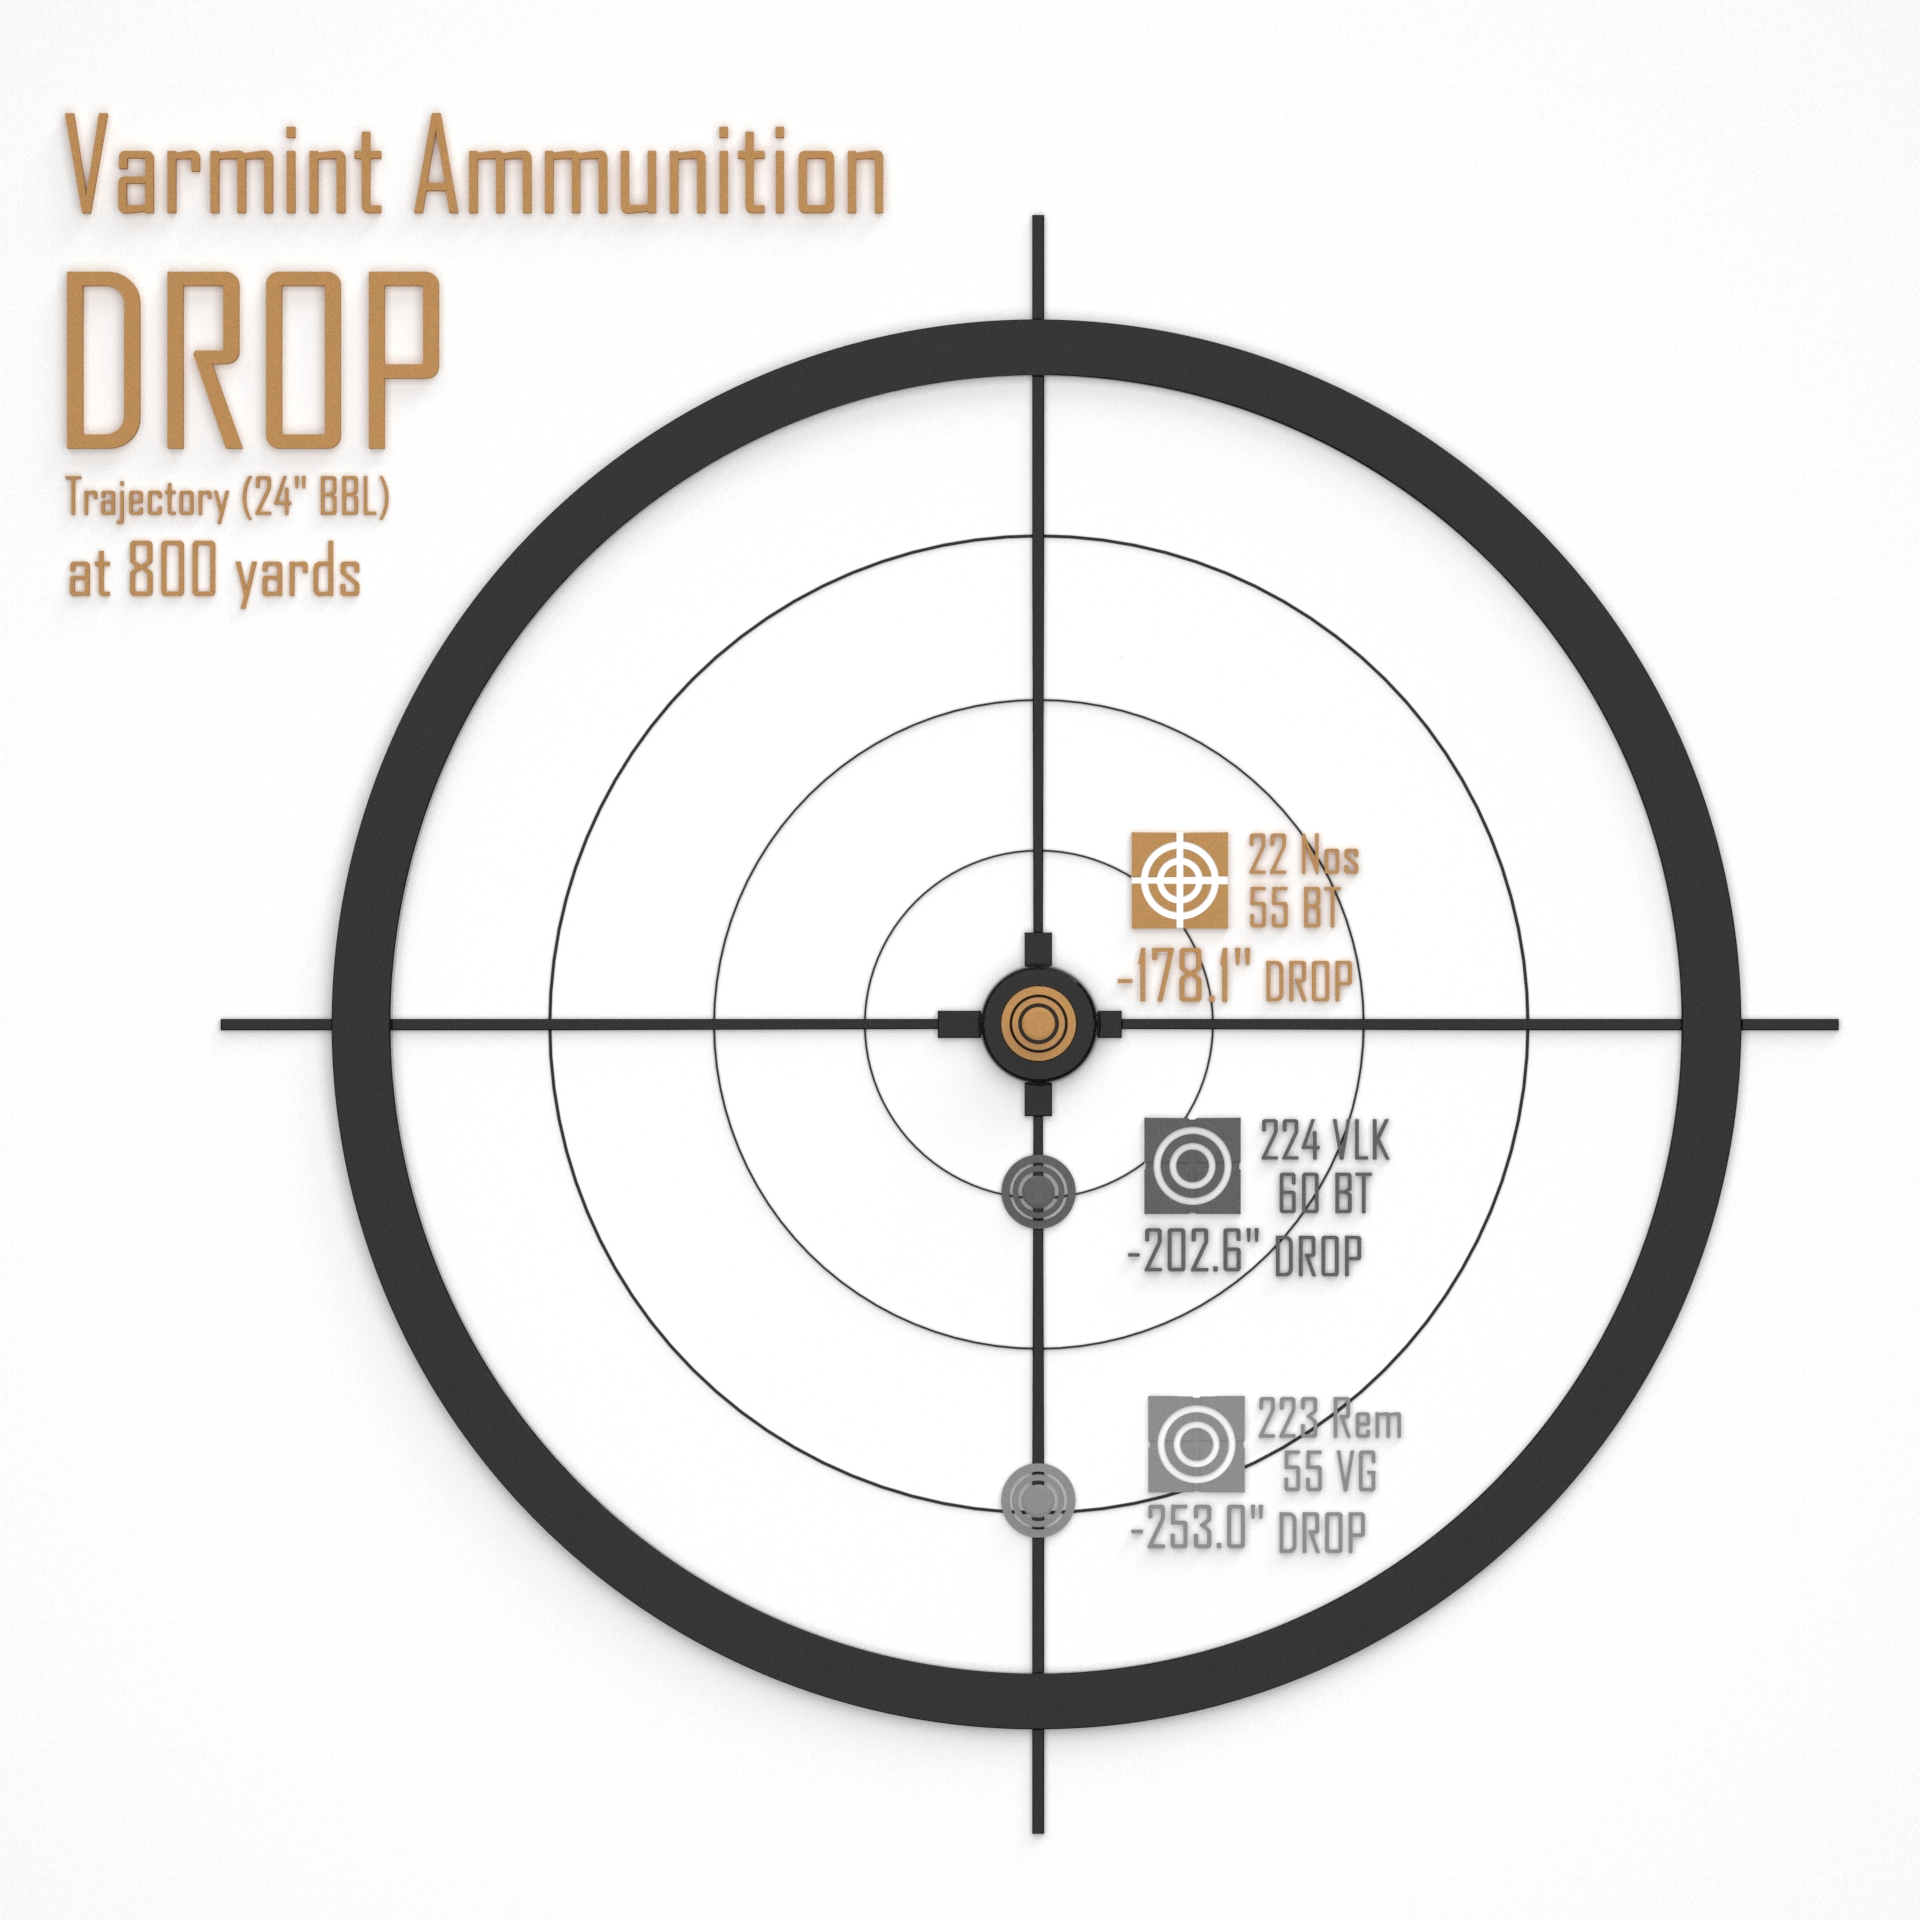 Varmint-Ammunition_Drop_1920x1920.JPG